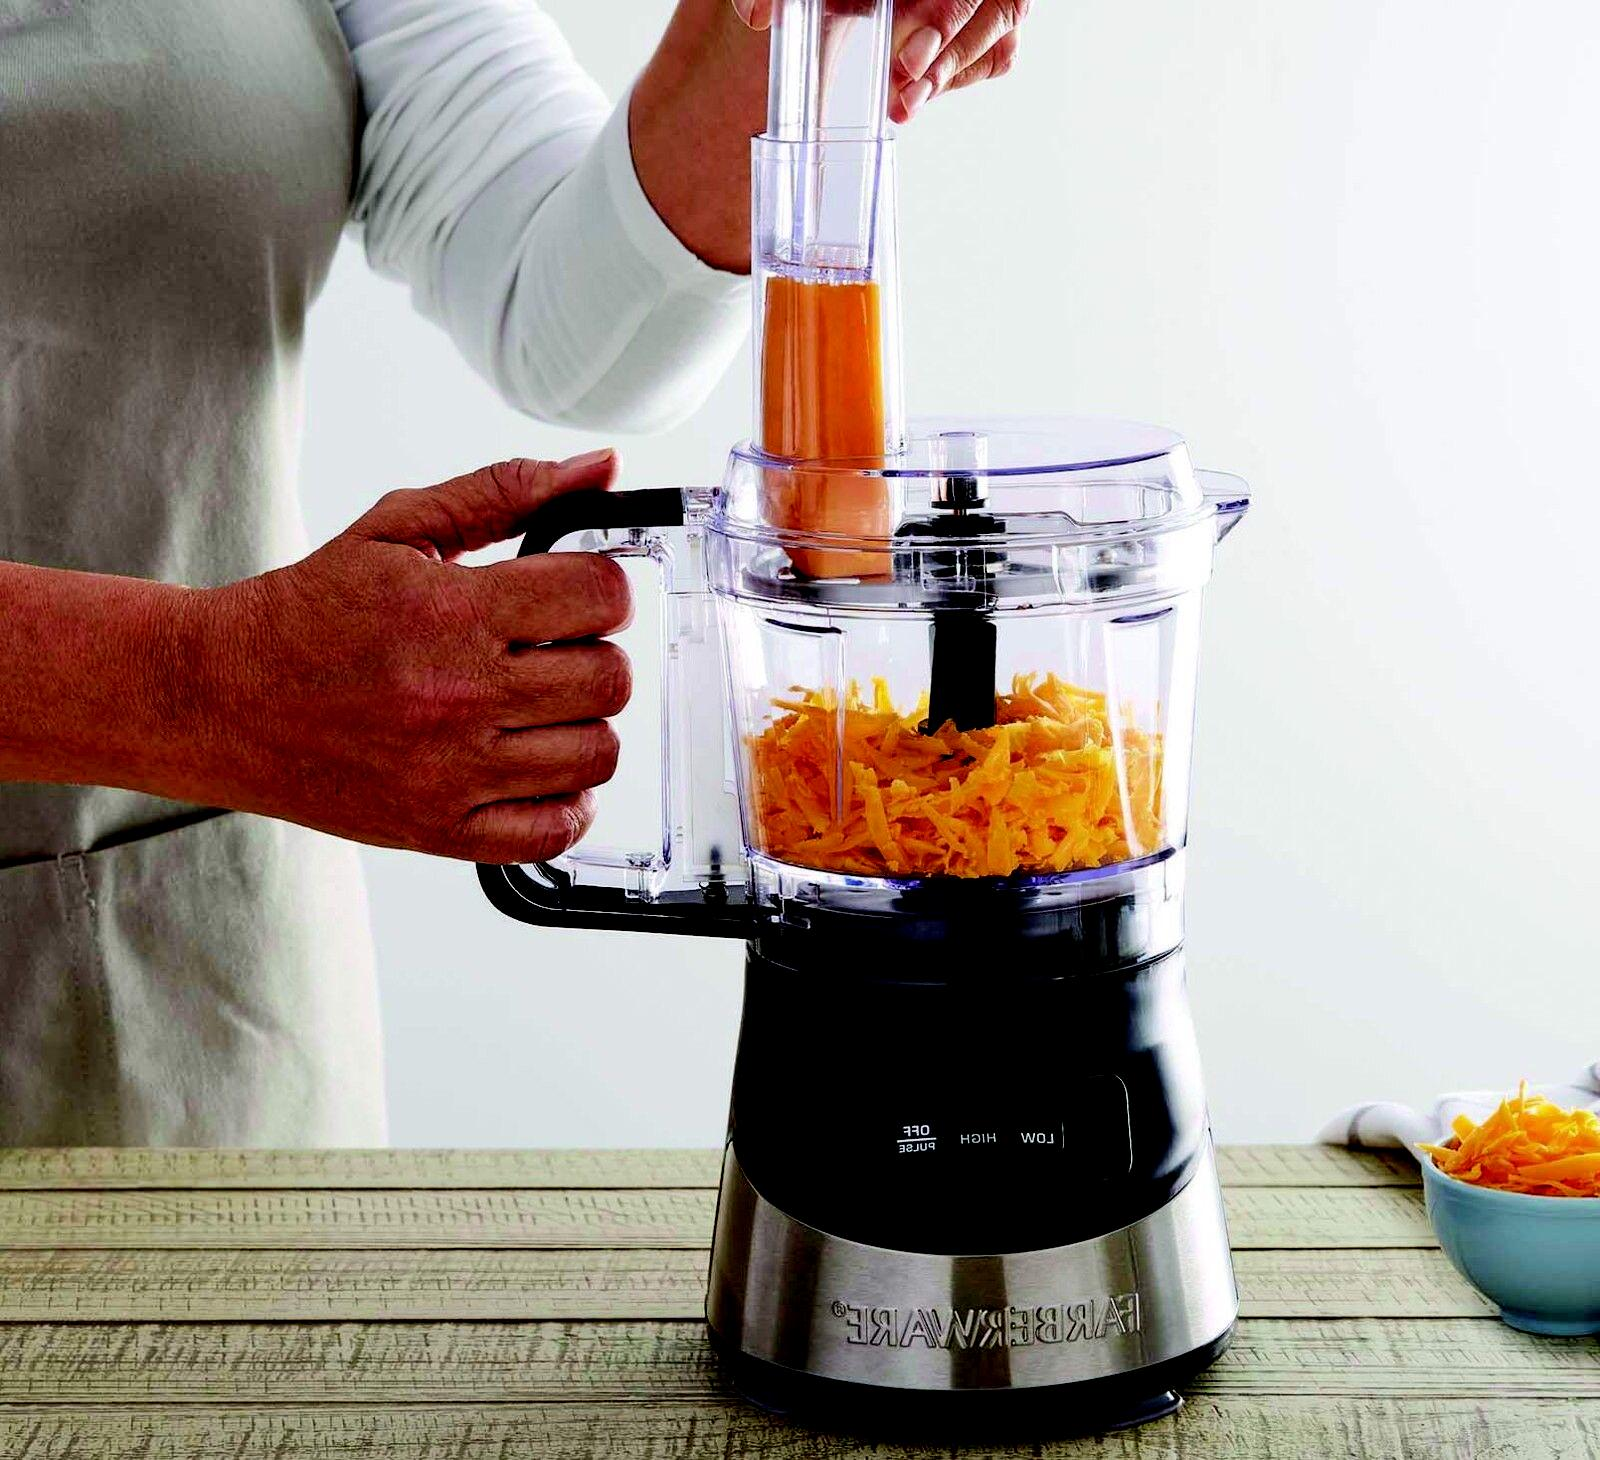 Farberware 4-Cup Food Processor with Stainless steel deco